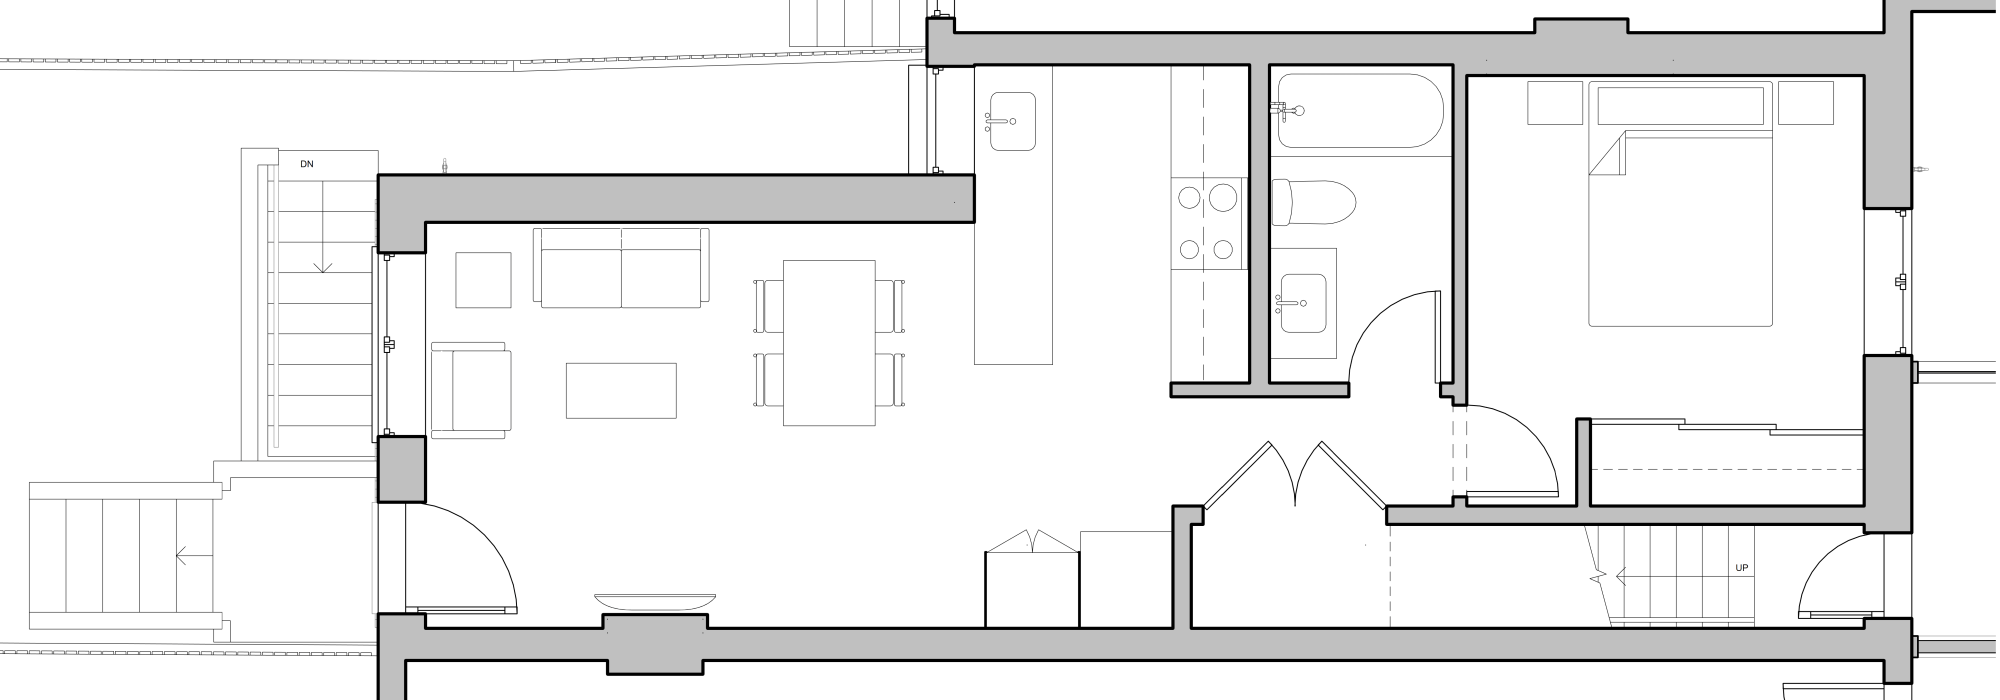 hight resolution of the bedroom tucked into the front of the house overlooks the street and the triple glazed windows bring in lots of light while keeping ambient